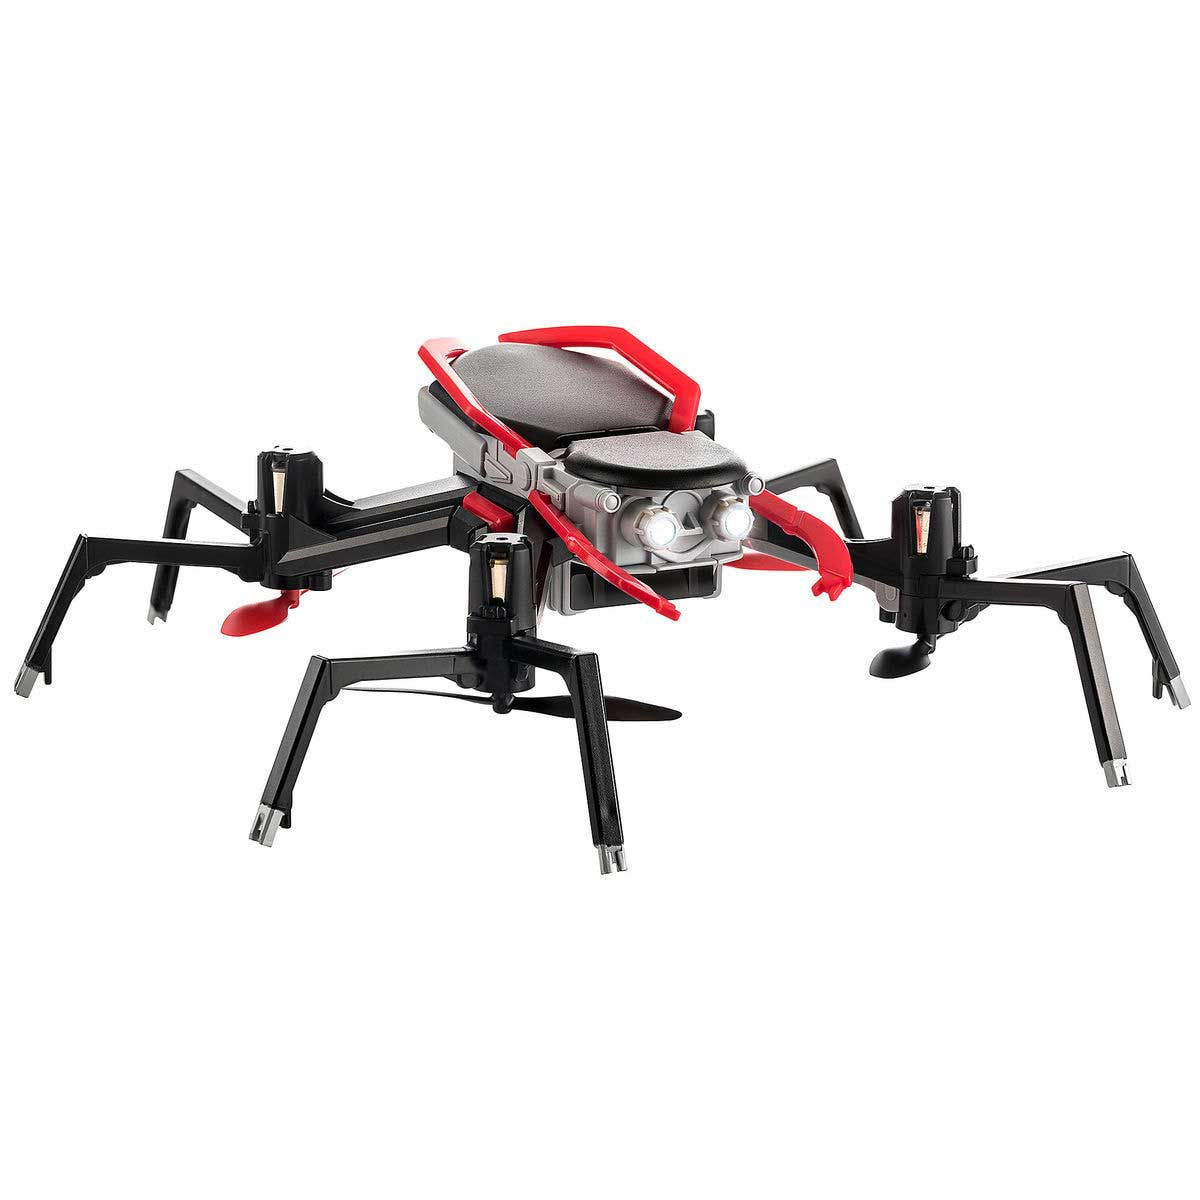 Spider-Man: Homecoming Spider Drone